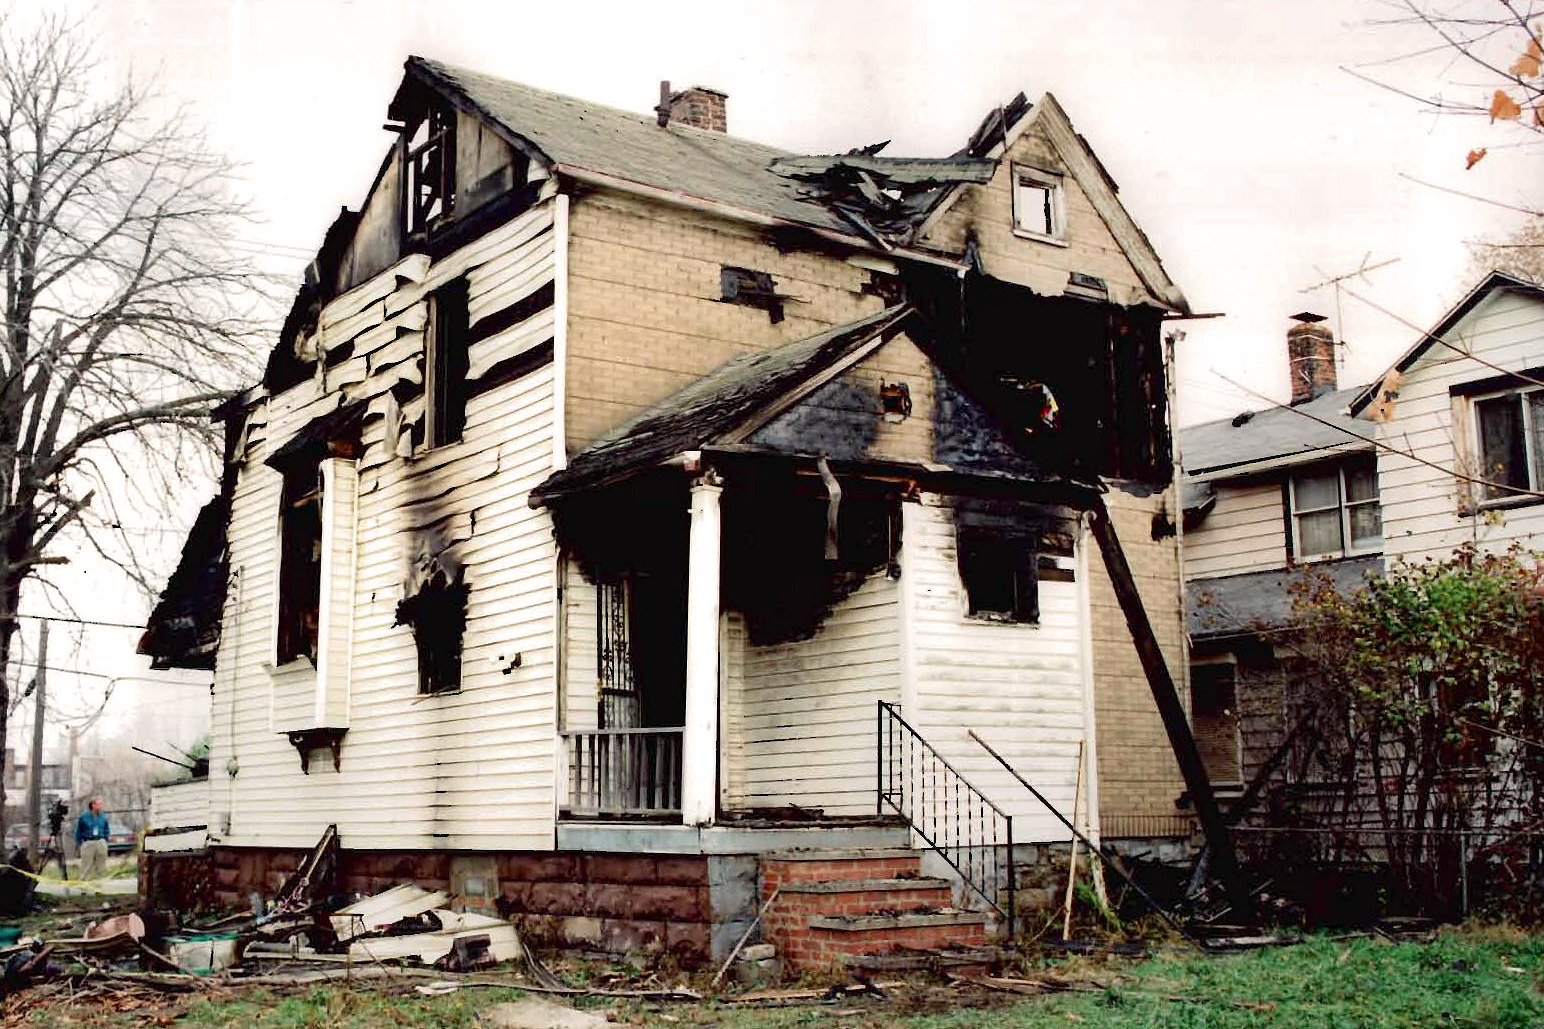 Angela-Garcia-ohio-arson-exterior-damage-1488387798